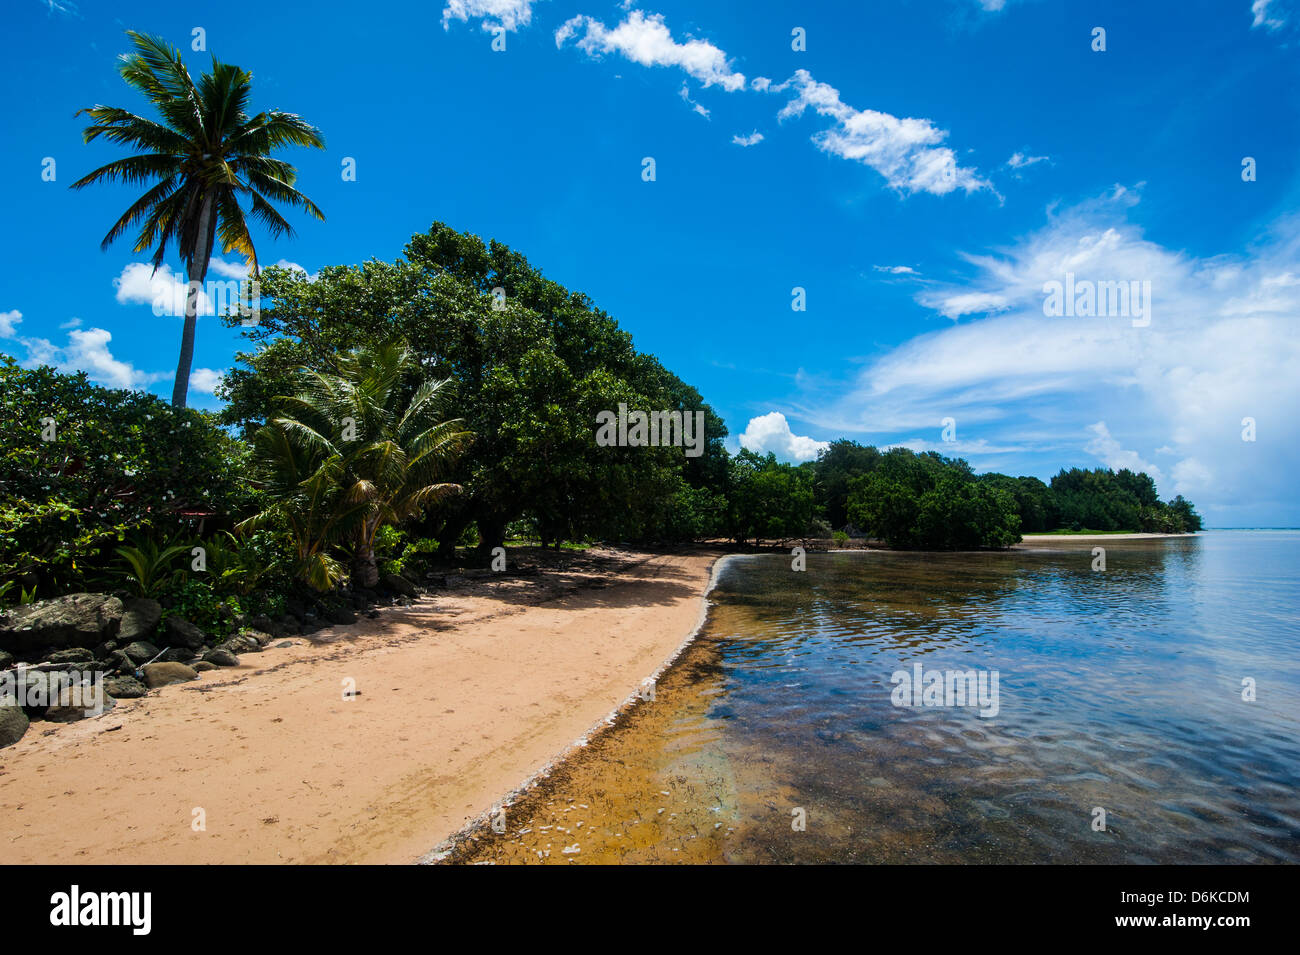 Beach in the north of the Island of Babeldoab, Palau, Central Pacific, Pacific - Stock Image